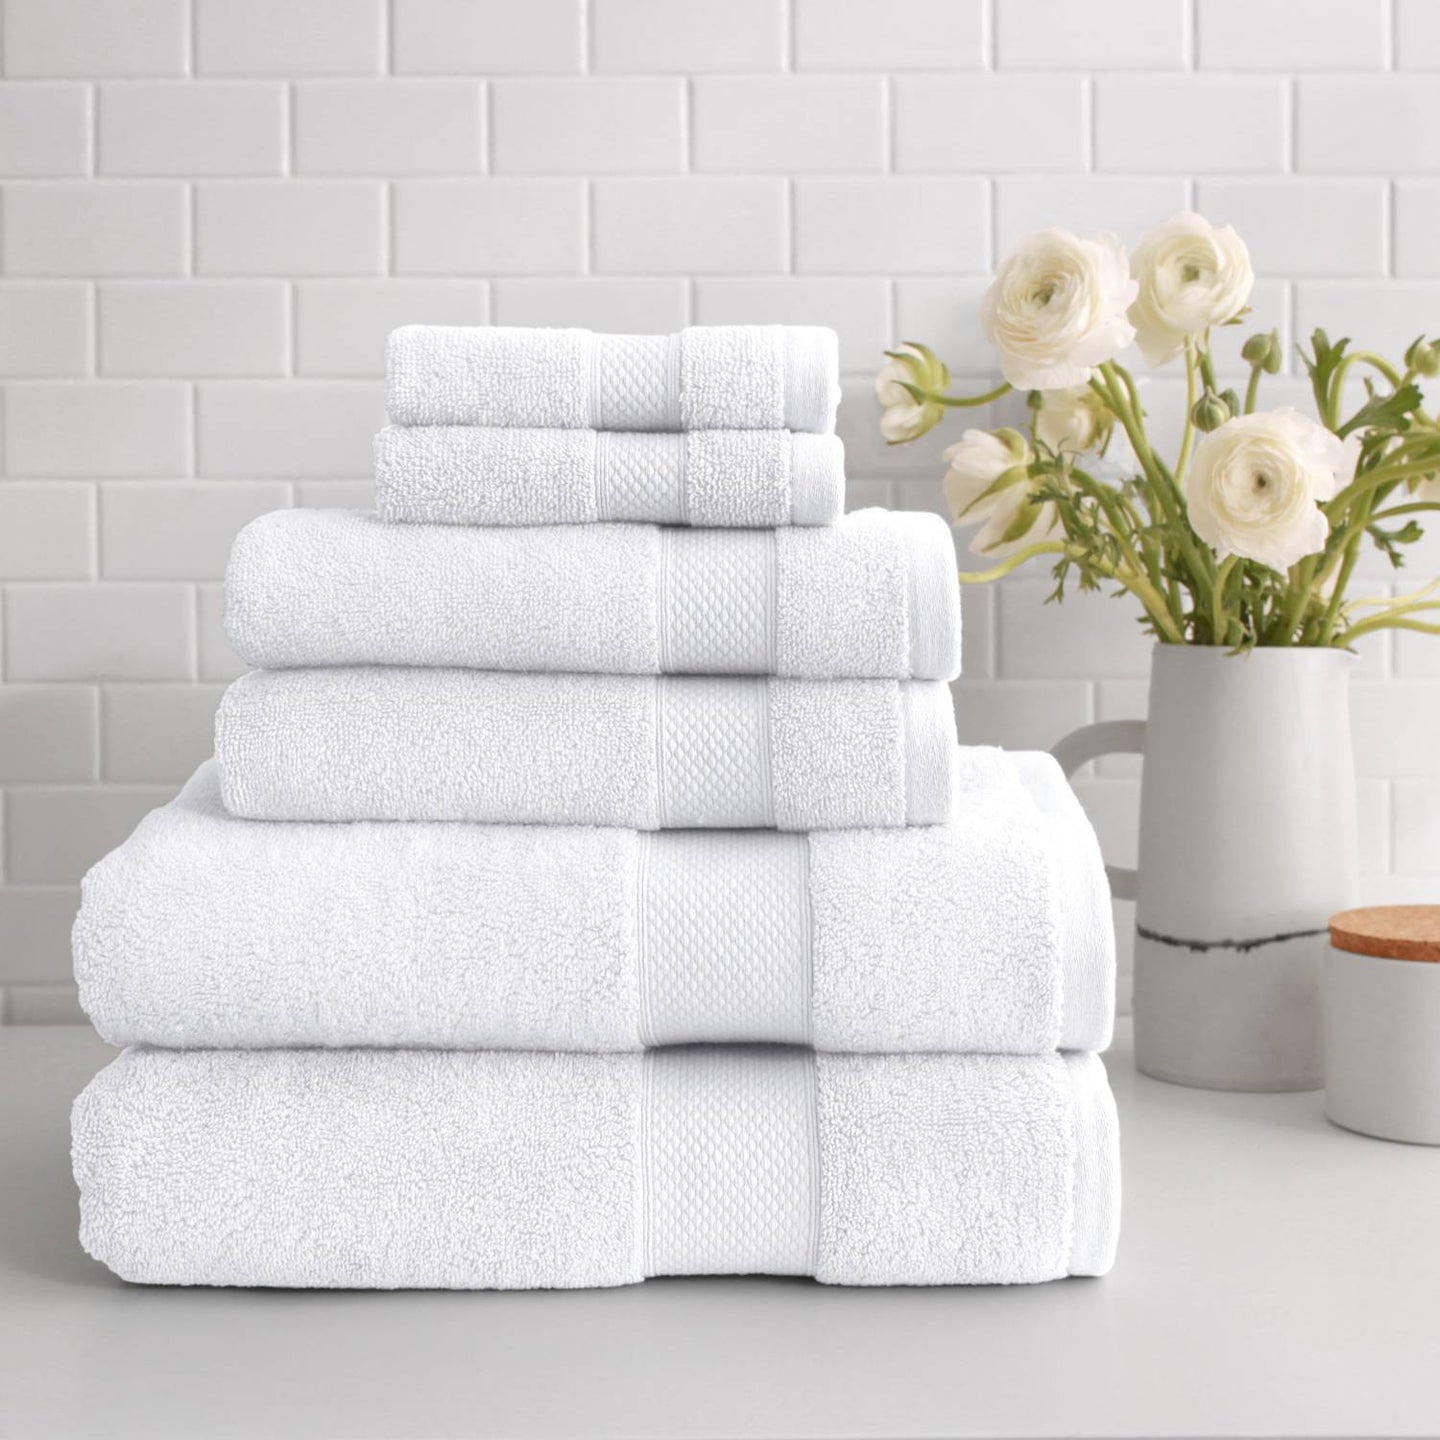 stacked Turkish Cotton 6-Piece Towel Set in white